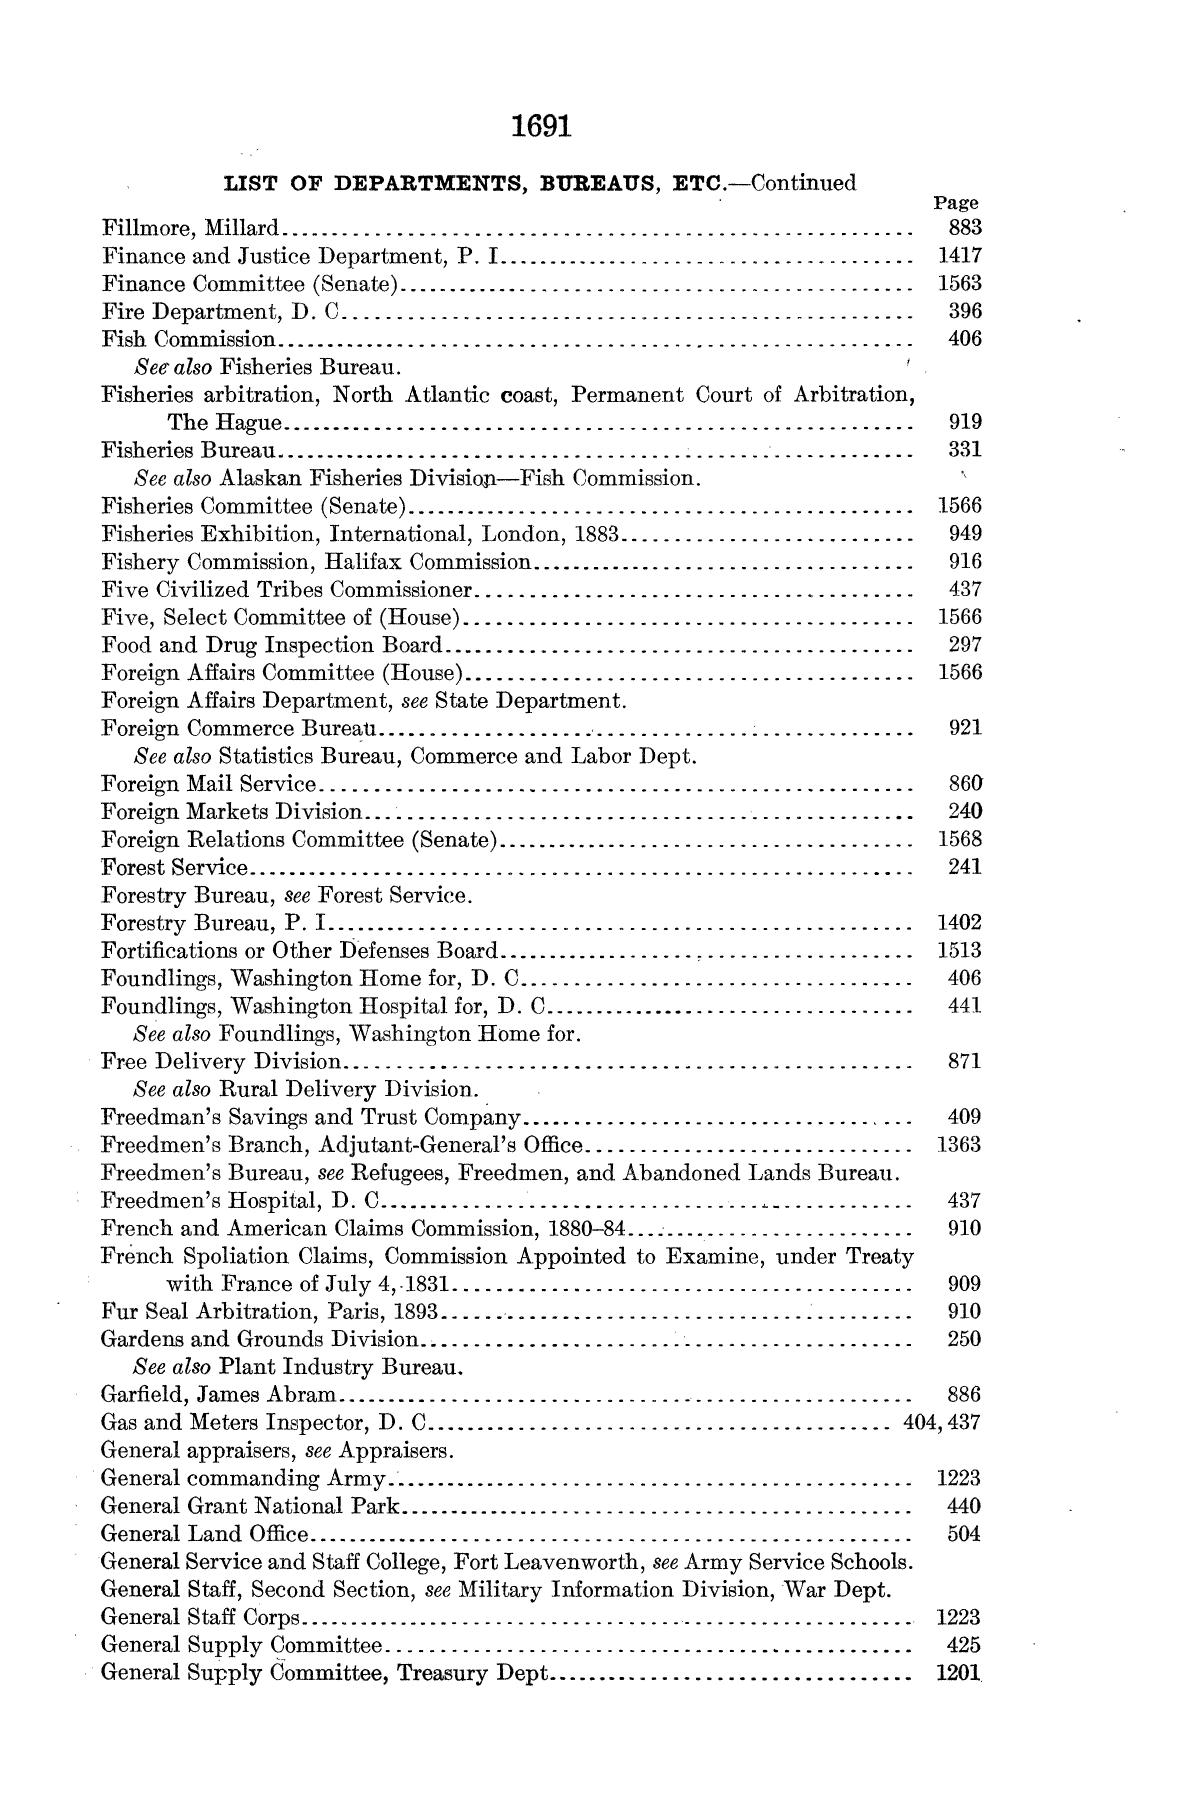 Checklist of United States Public Documents, 1789-1909, Third Edition Revised and Enlarged, Volume 1, Lists of Congressional and Departmental Publications                                                                                                      1691